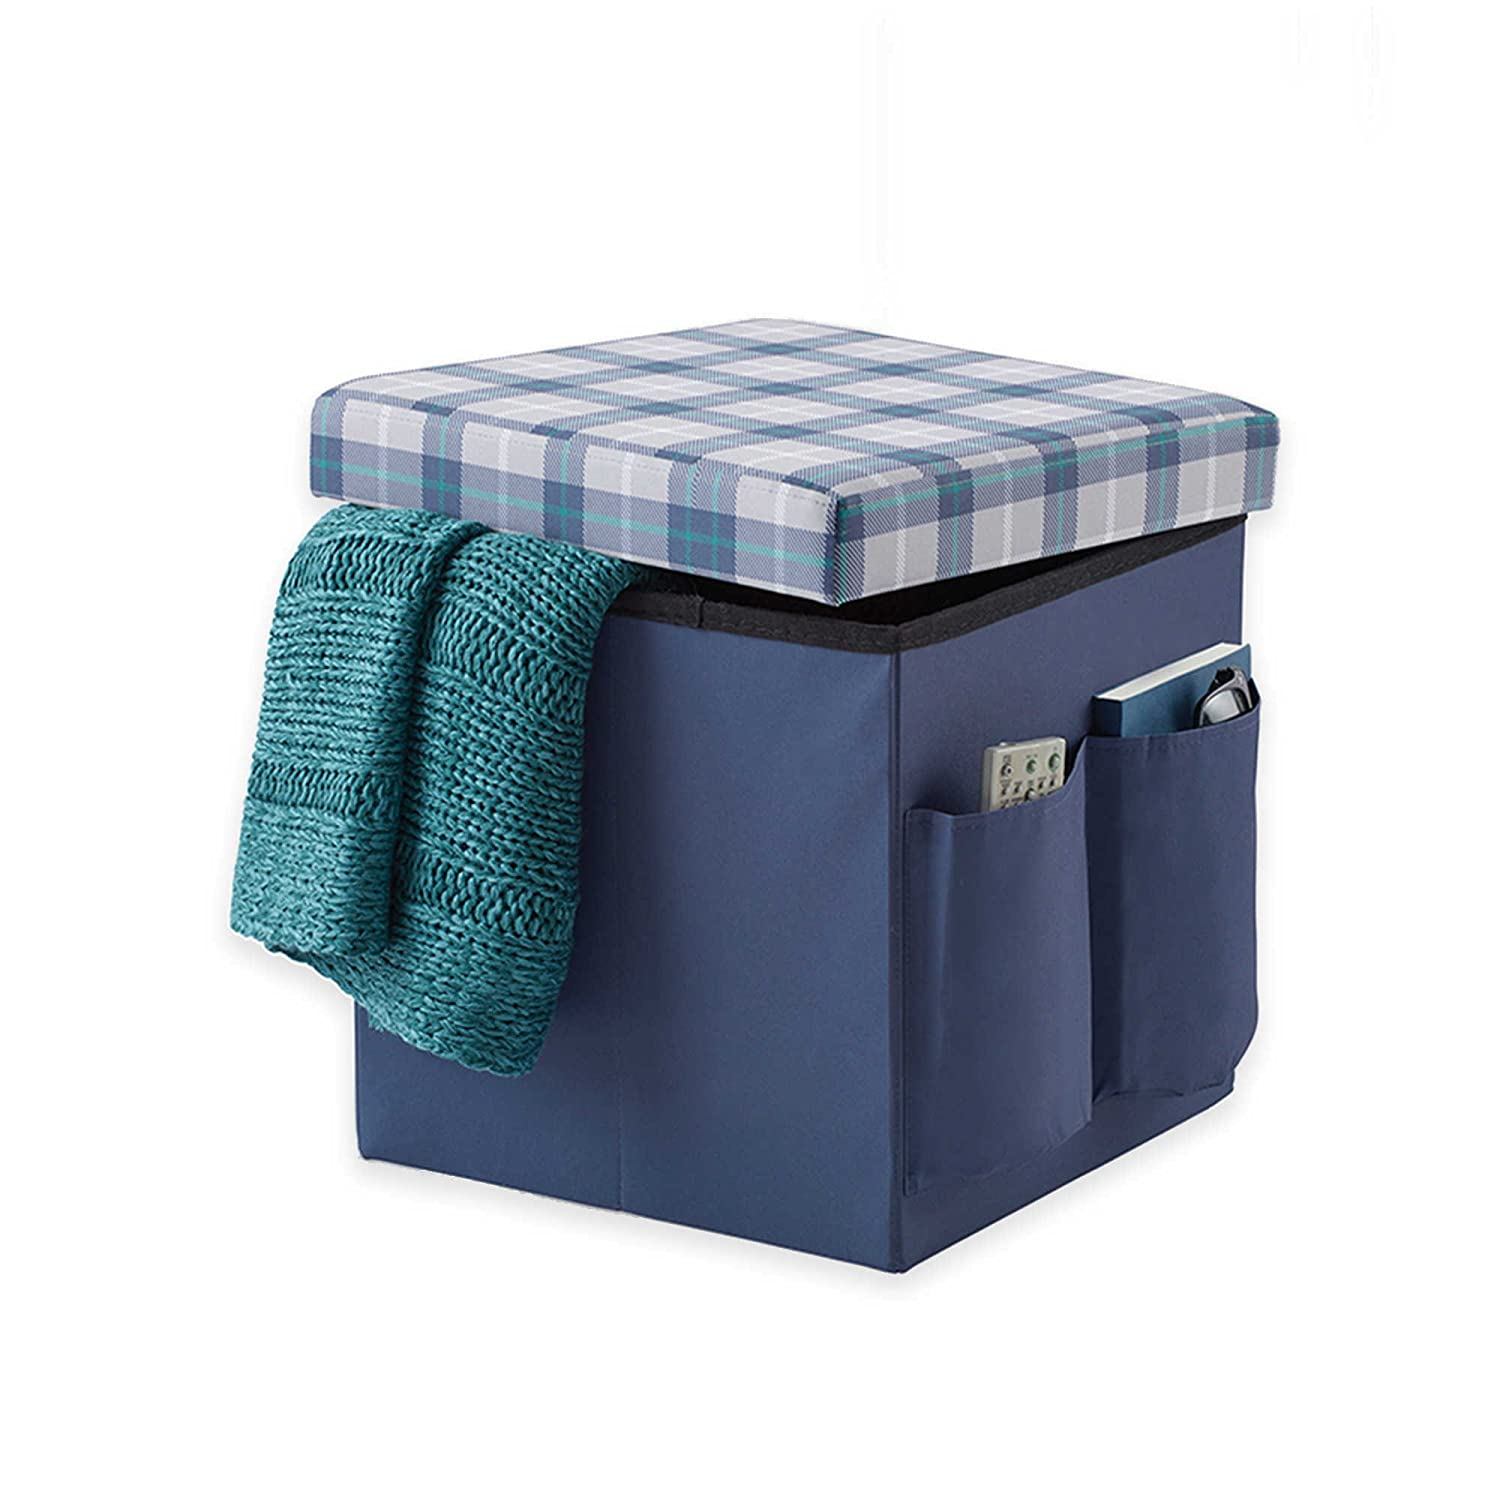 amazoncom sit  store folding ottoman in blue plaid  lb  - amazoncom sit  store folding ottoman in blue plaid  lb weightcapacity cell phones  accessories